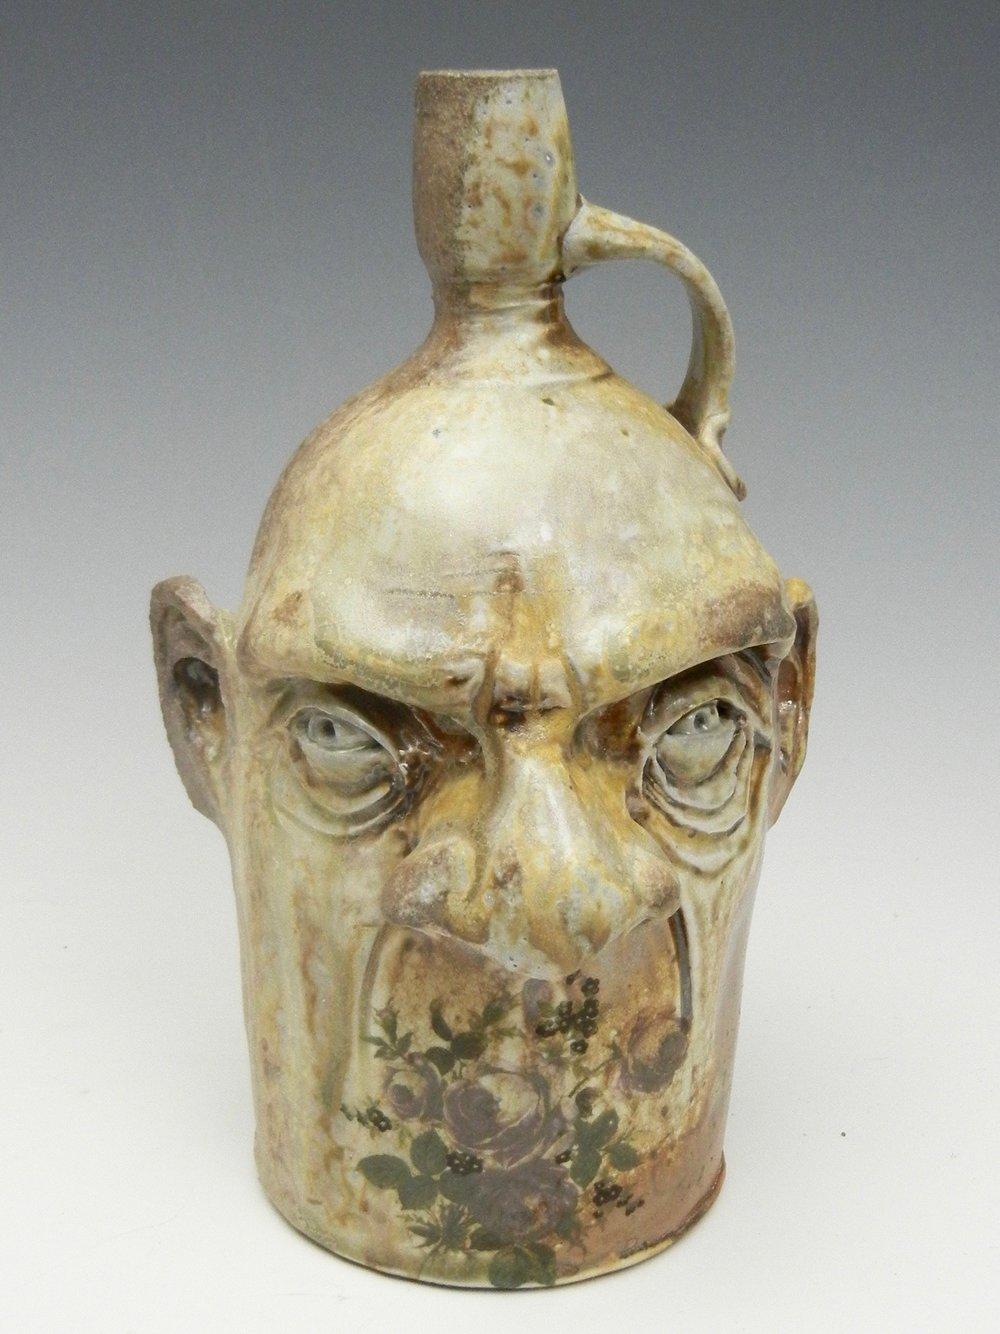 Lorenz Pottery, handmade, ceramics, pottery, folk pottery, wood fired, soda fired, jug, face jug, ugly jug